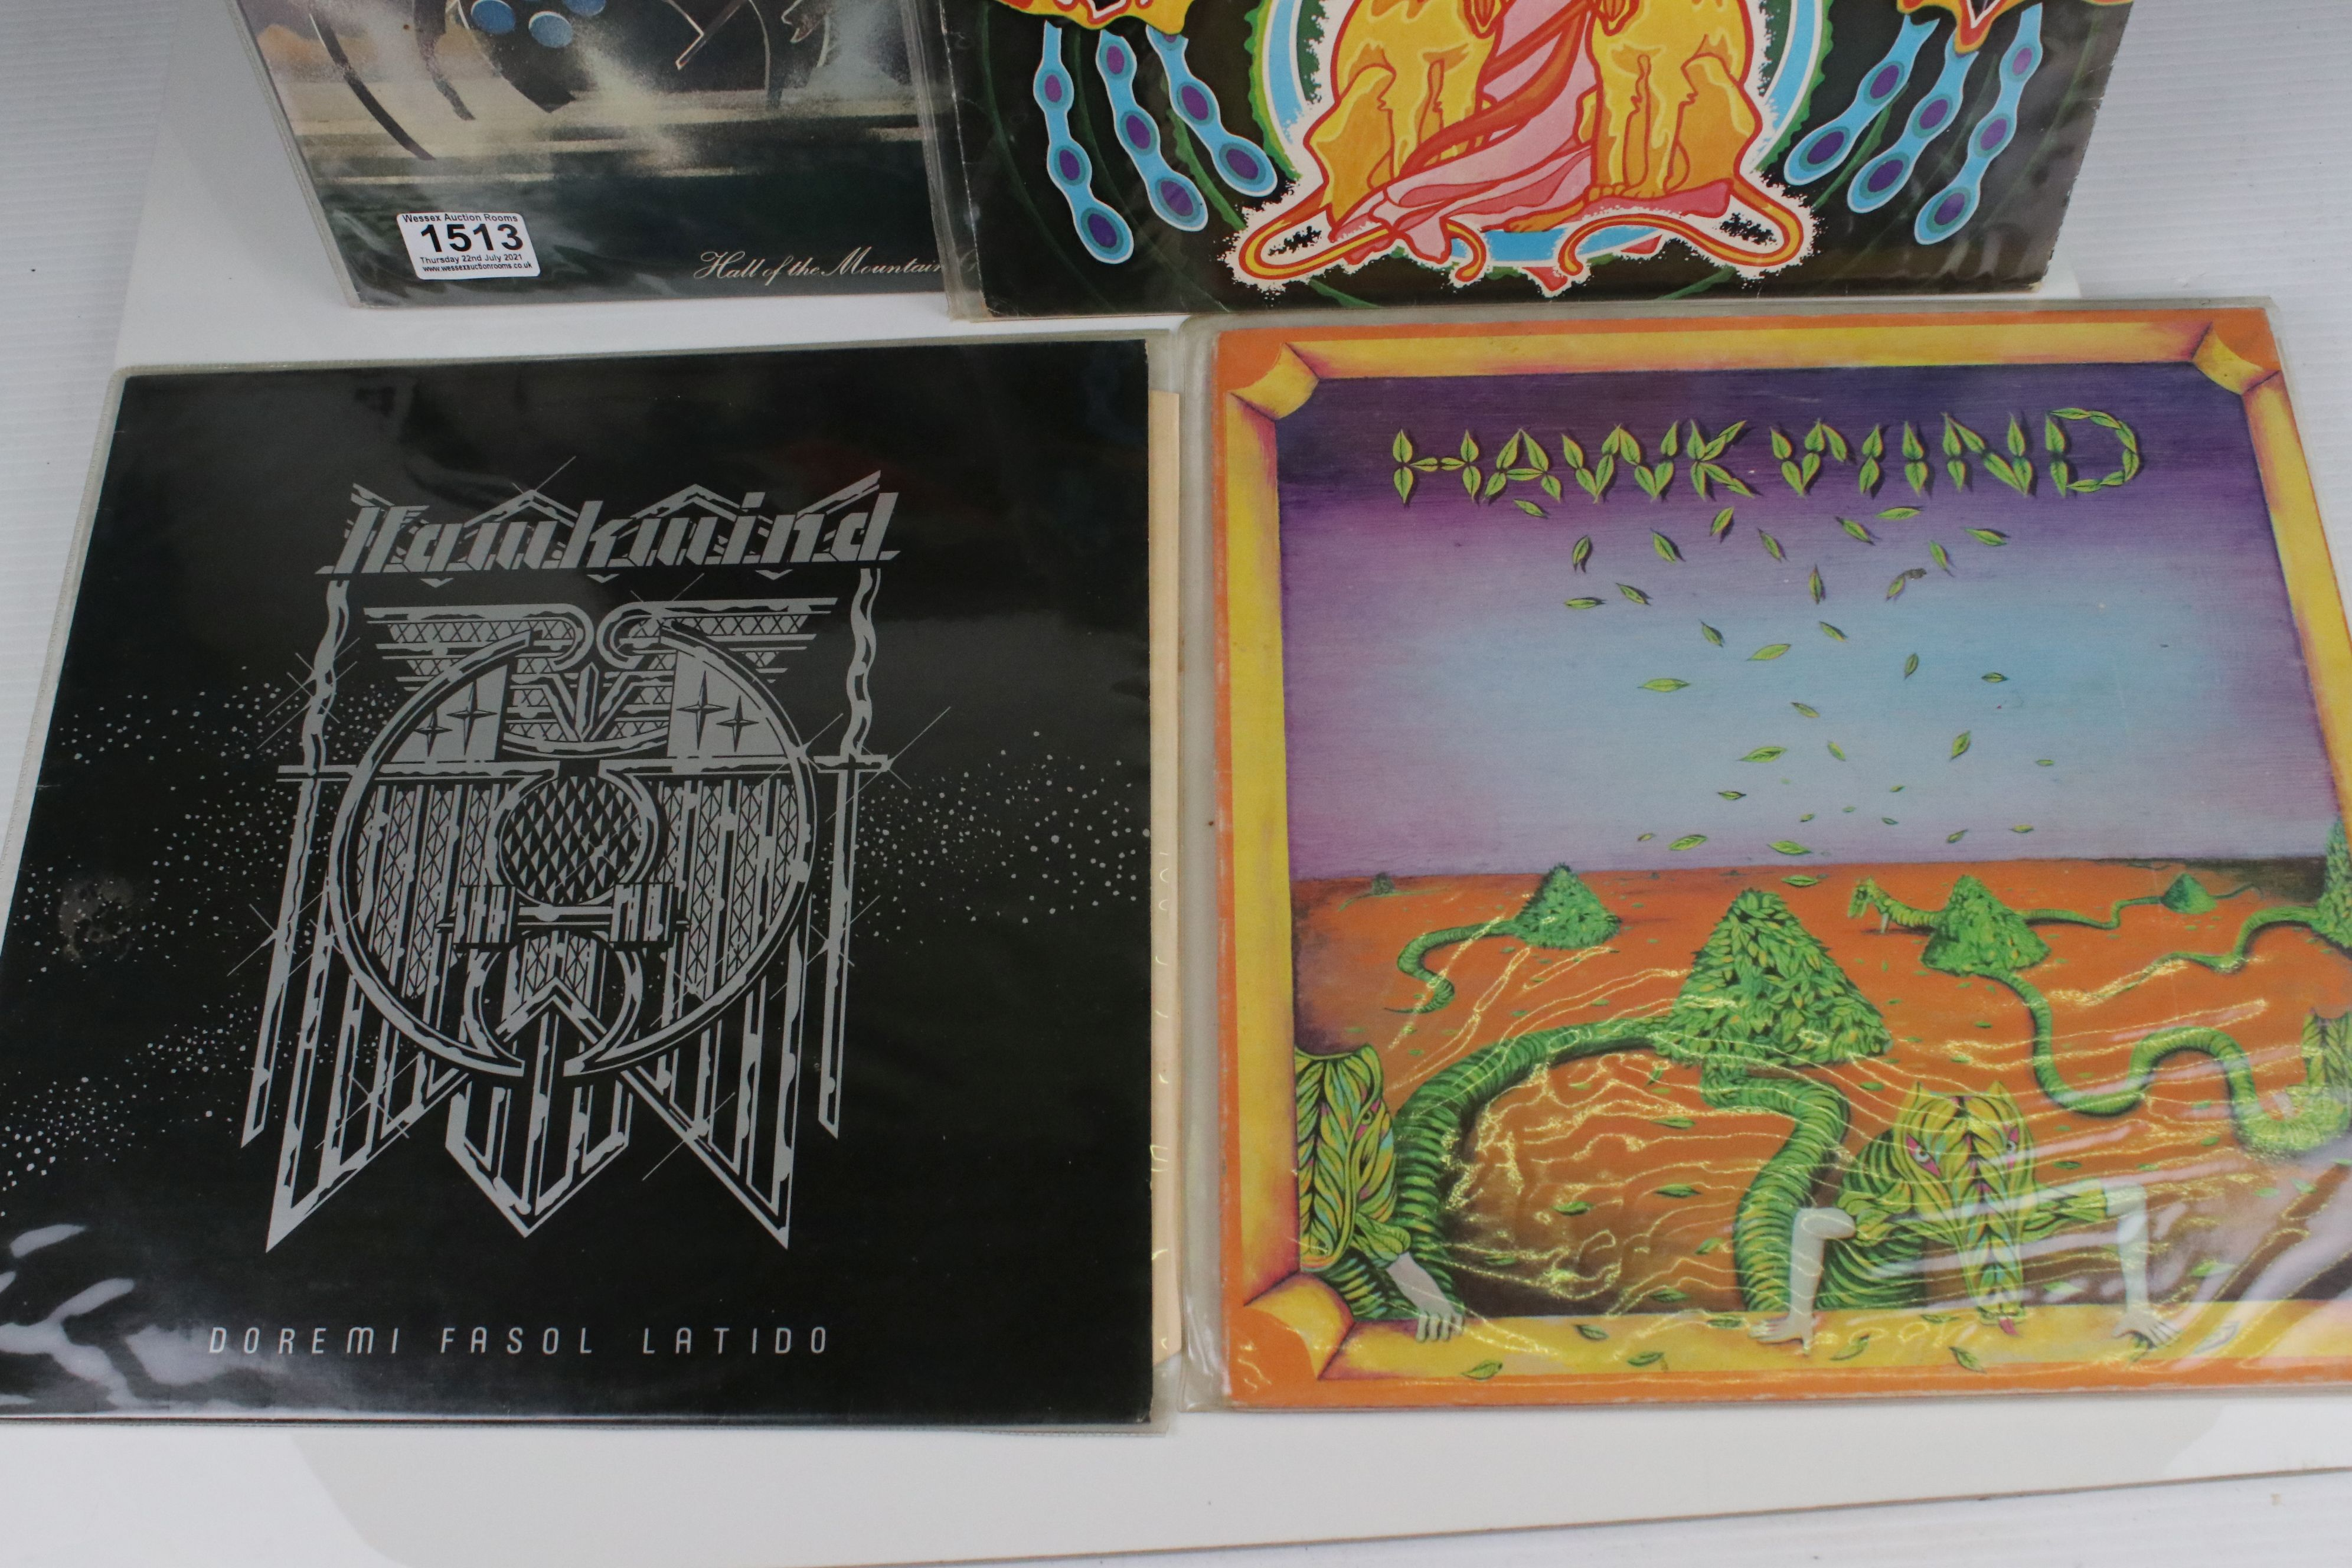 Vinyl - Four Hawkwind LPs to include self titled (LBS83348) gatefold sleeve, black Liberty label, - Image 2 of 3